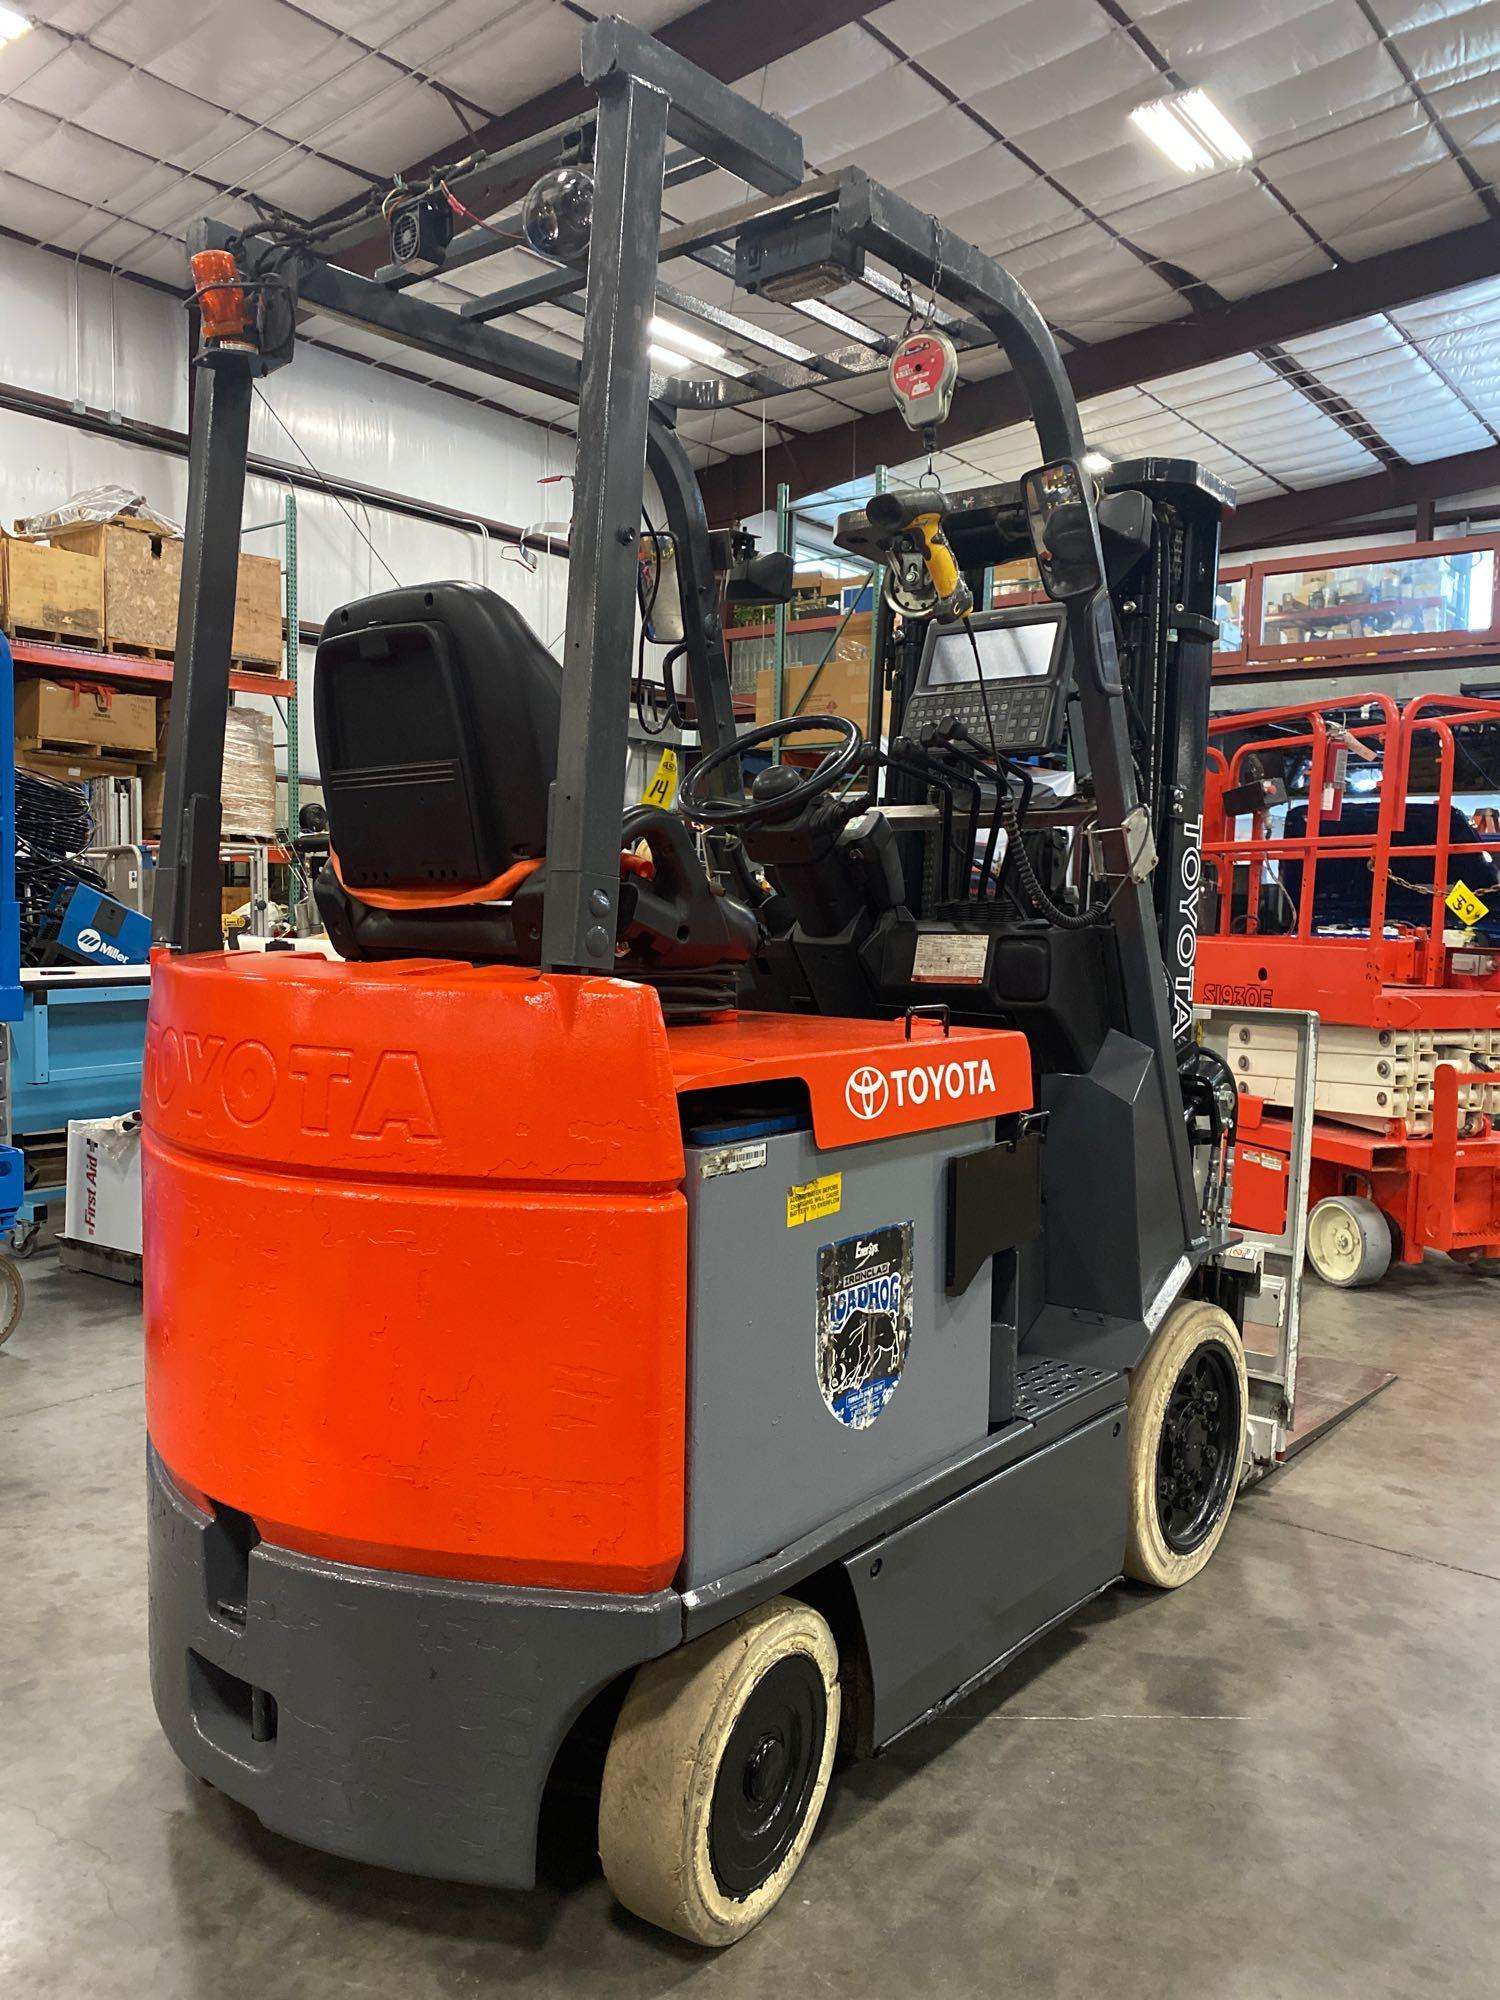 """TOYOTA ELECTRIC FORKLIFT MODEL 7FBCU25, 189"""" HEIGHT CAPACITY, TILT, SIDESHIFT, 36V, RUNS AND OPERATE - Image 3 of 11"""